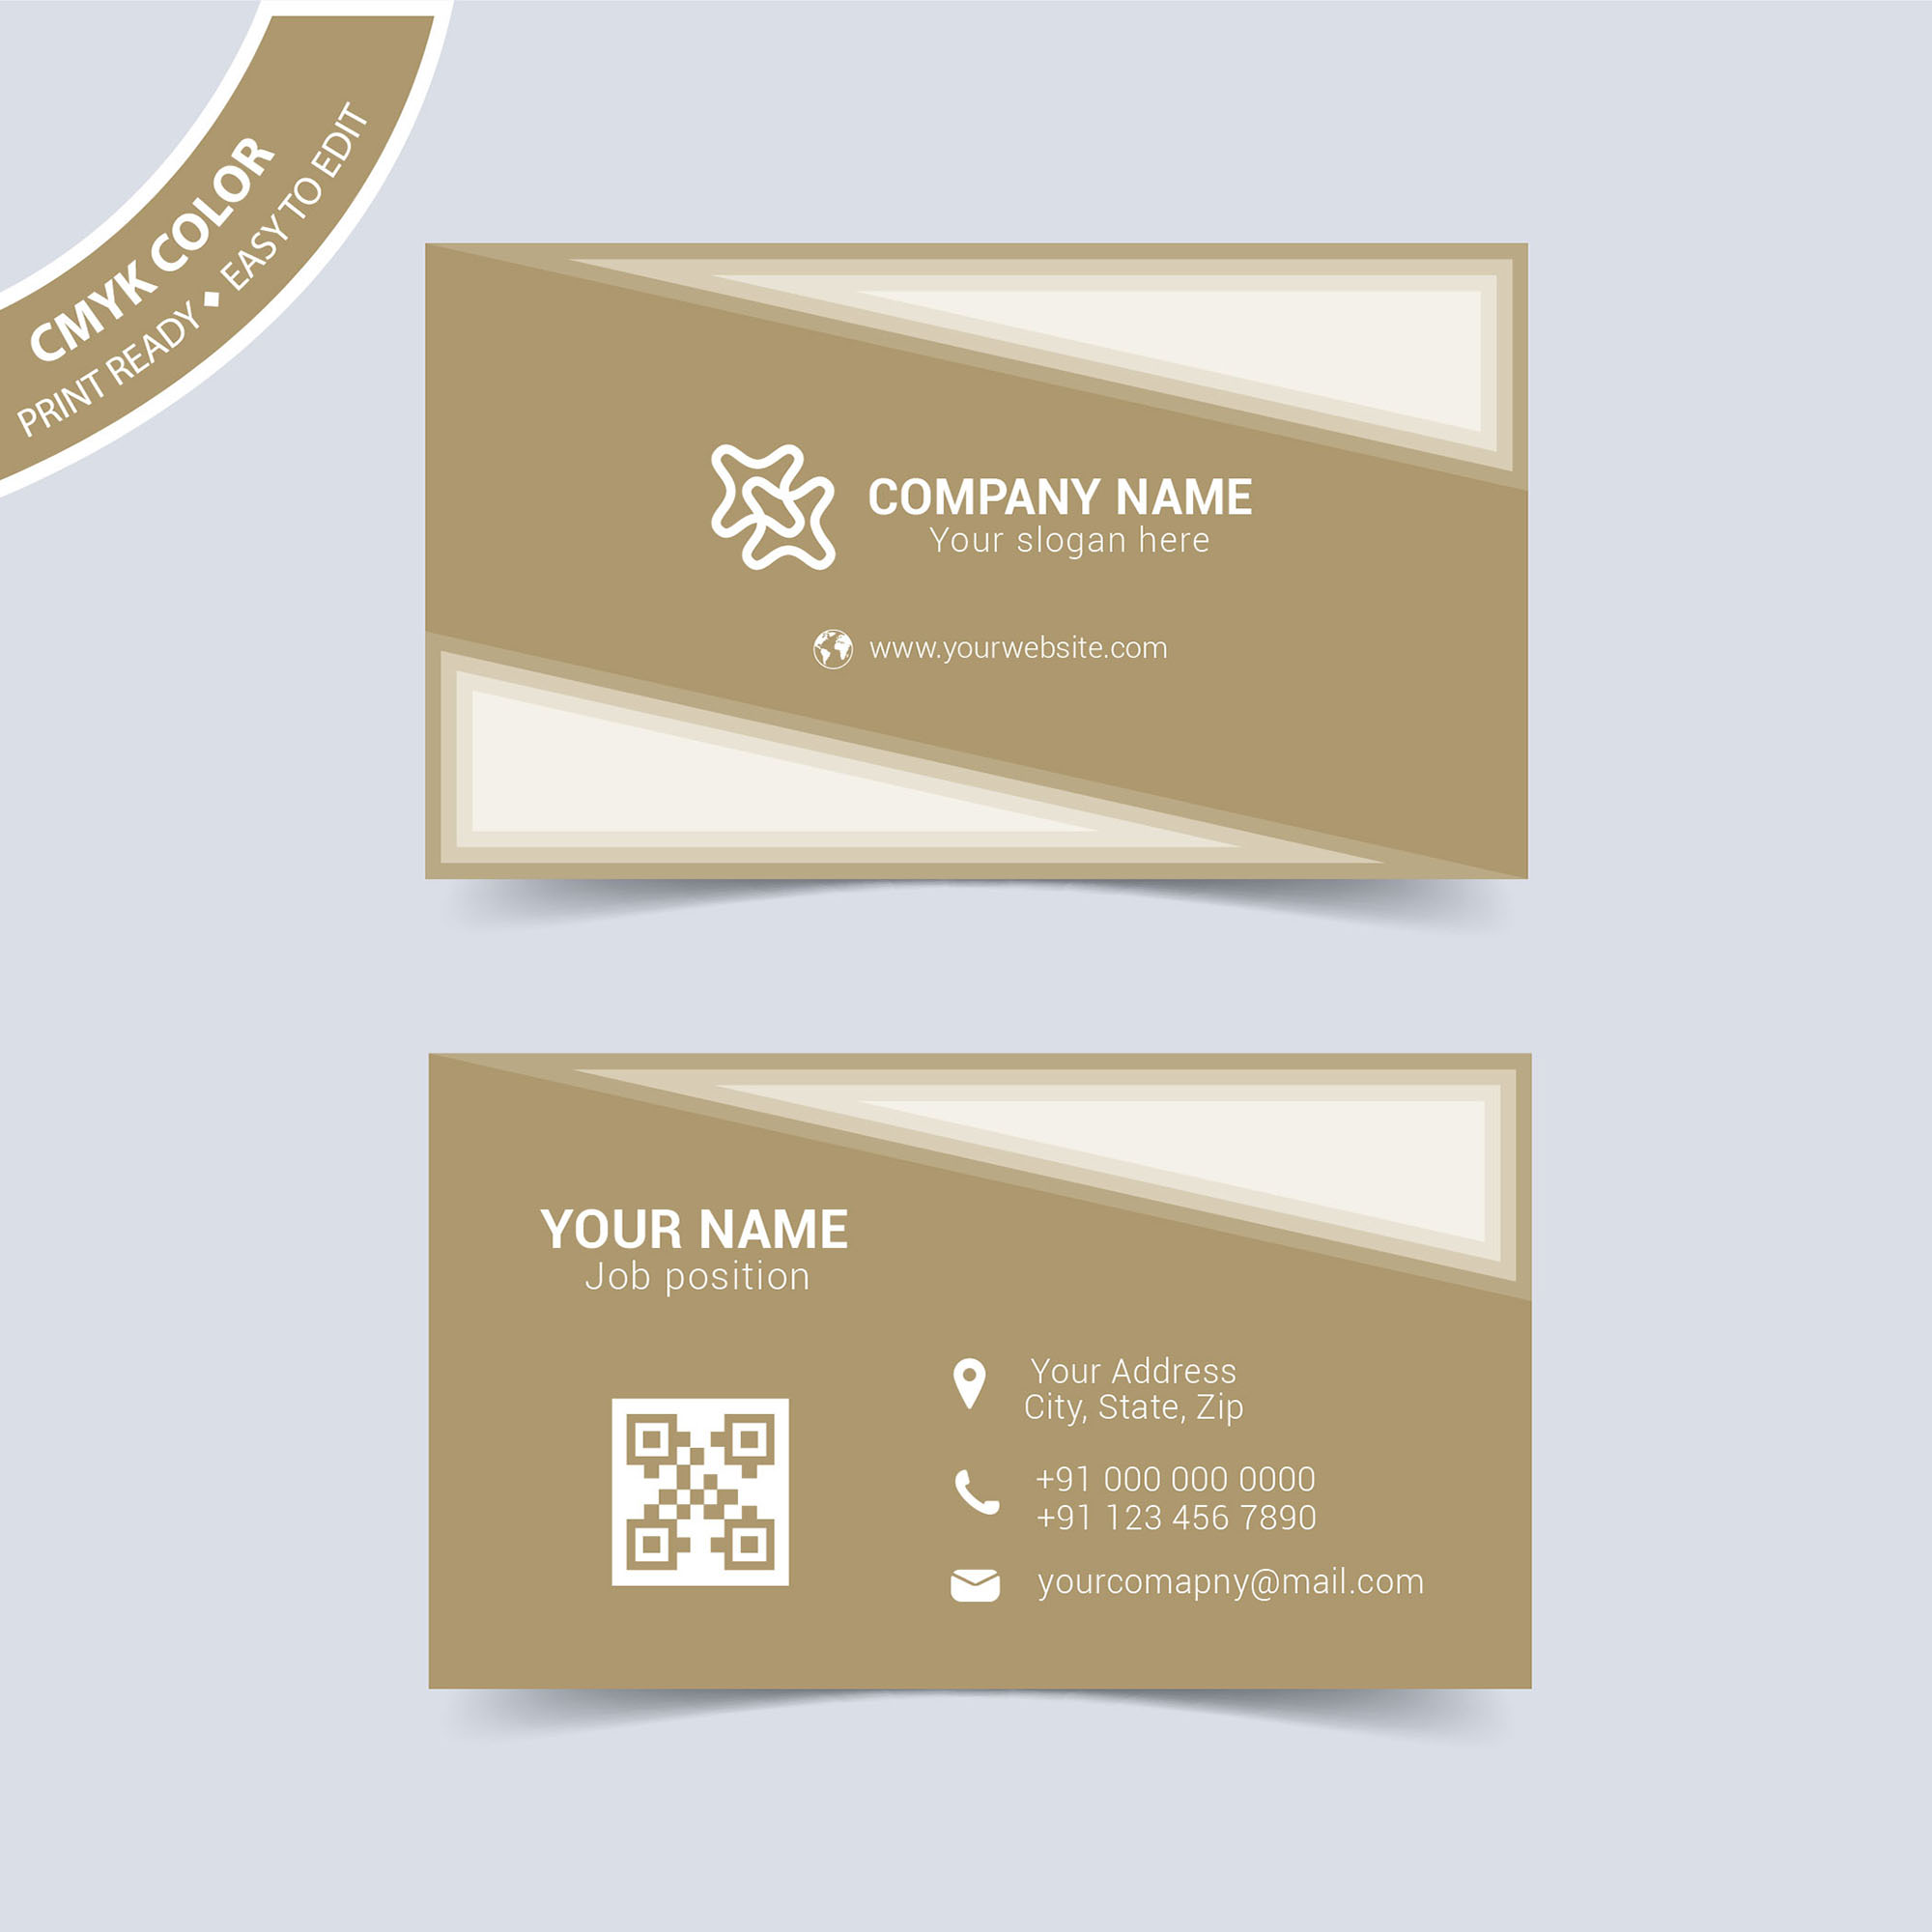 Custom business card design free download wisxi business card business cards business card design business card template design templates colourmoves